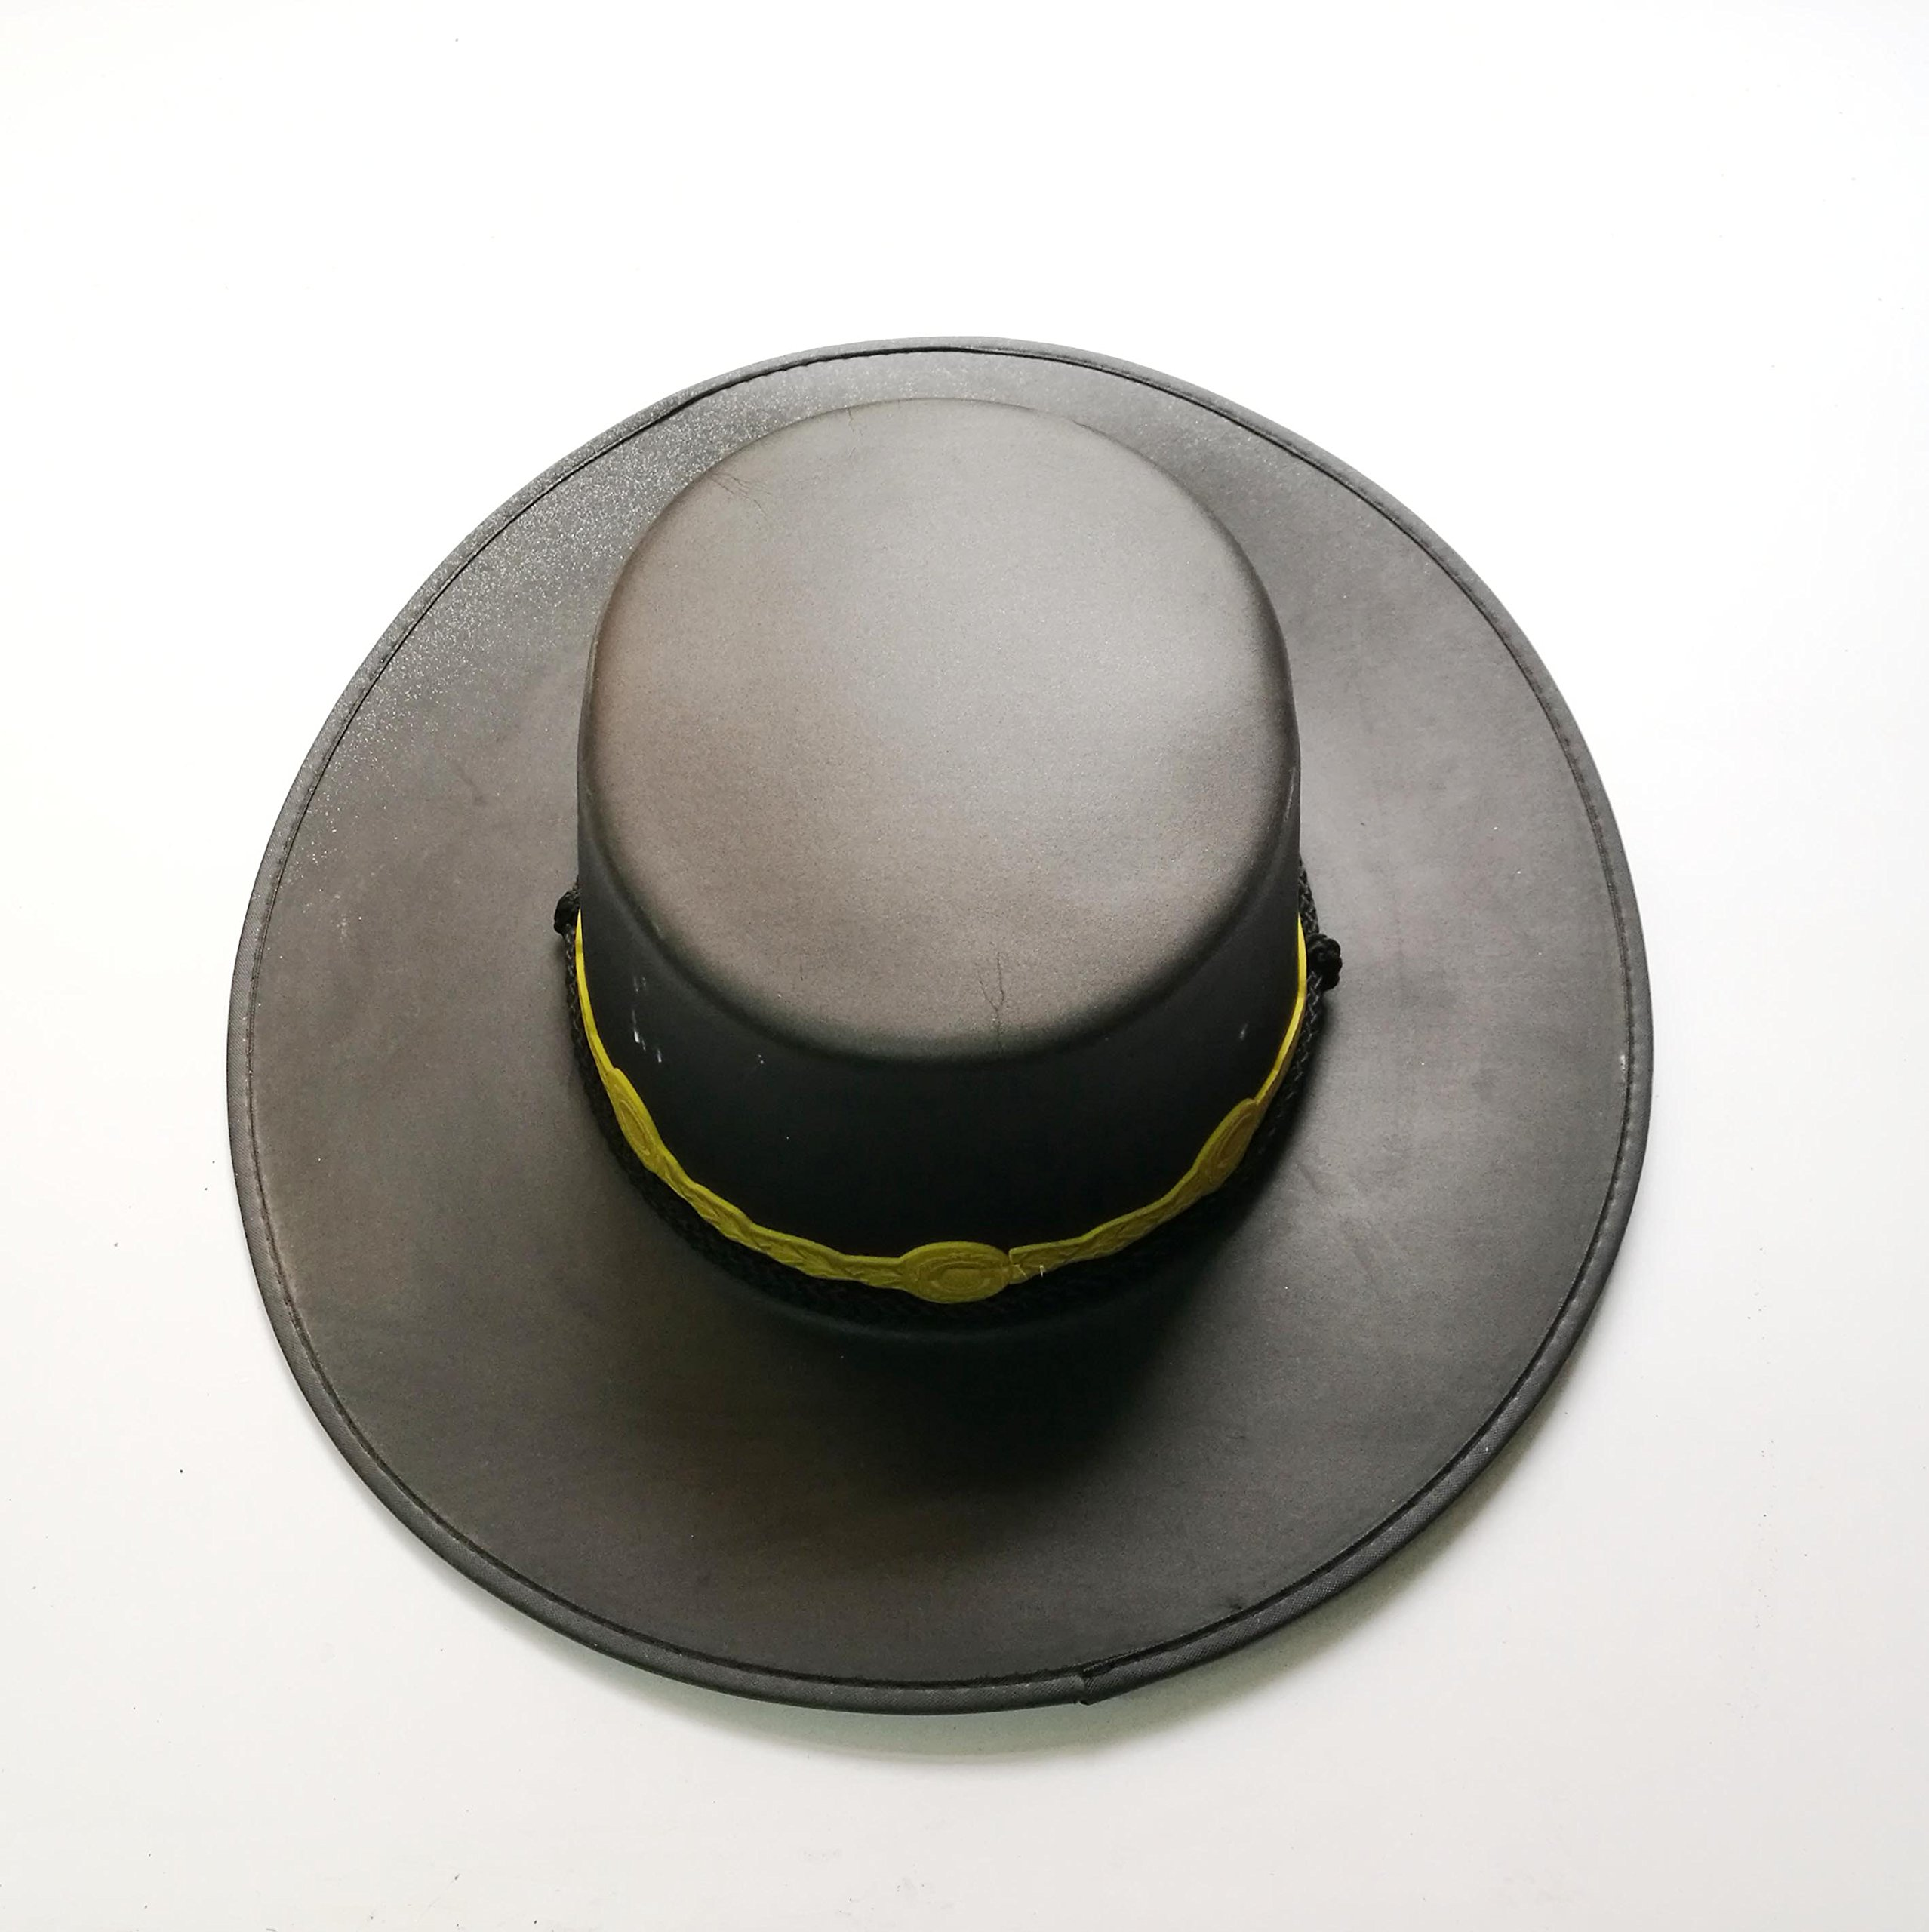 FixtureDisplays Used Top Hat Costume For Adult and Child Costume Accessory 18508